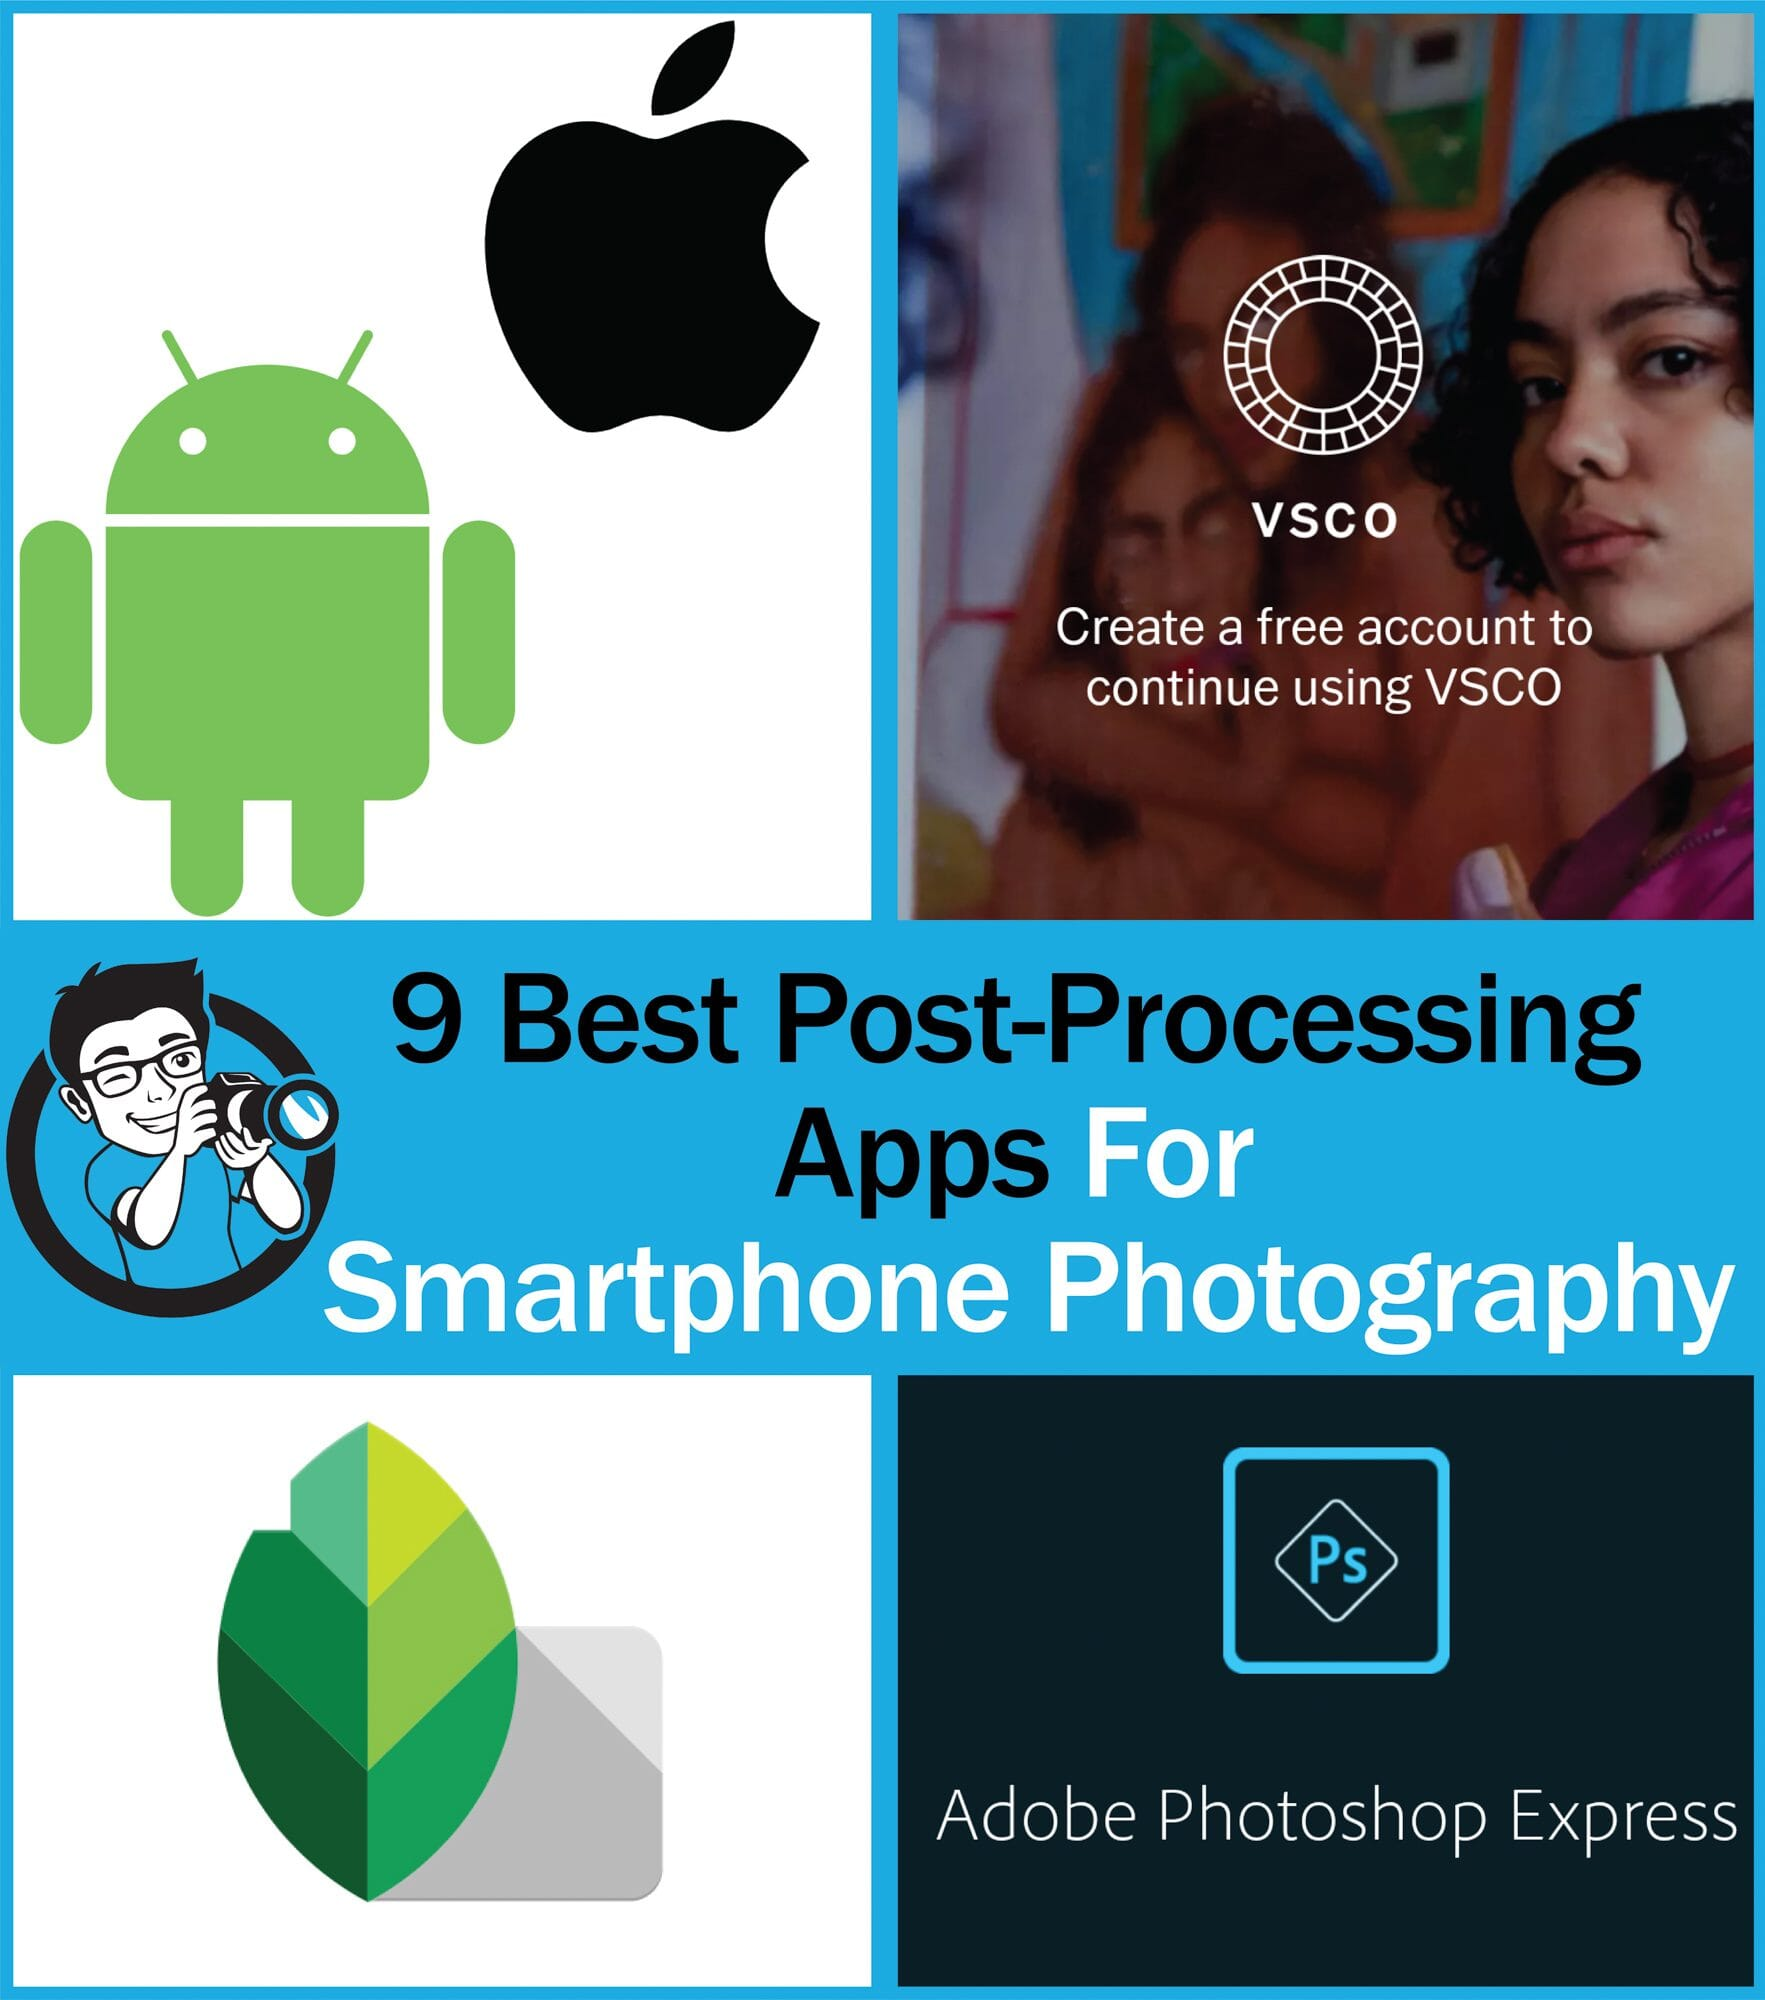 Best Post Processing Apps for Smartphone Photography